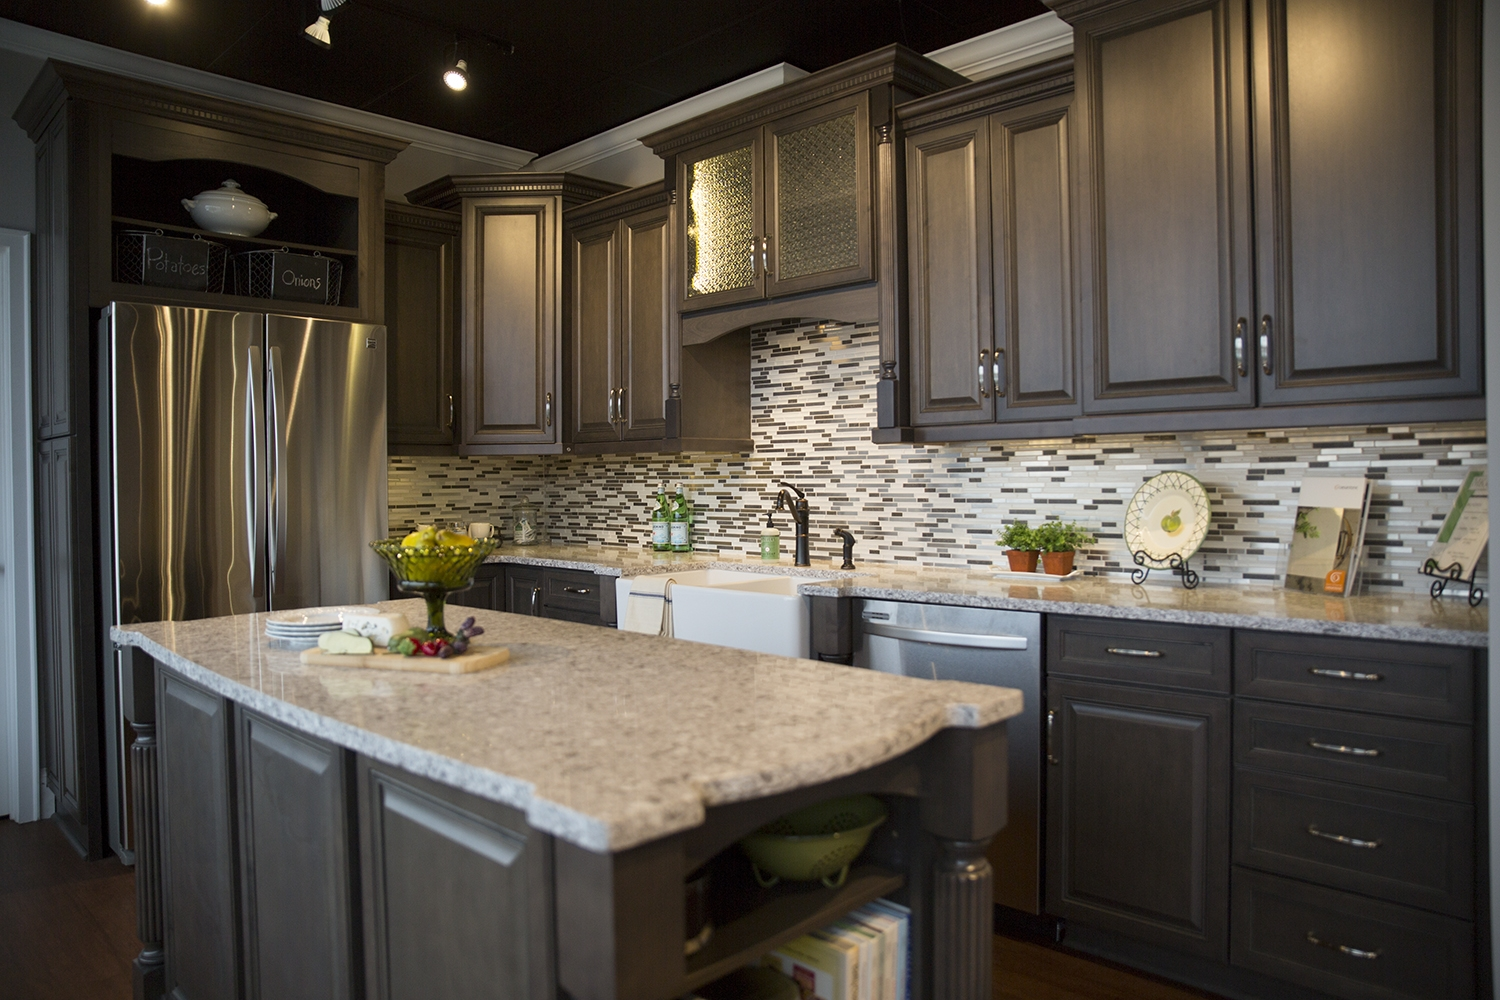 Permalink to Kitchen Cabinets Countertops Pictures